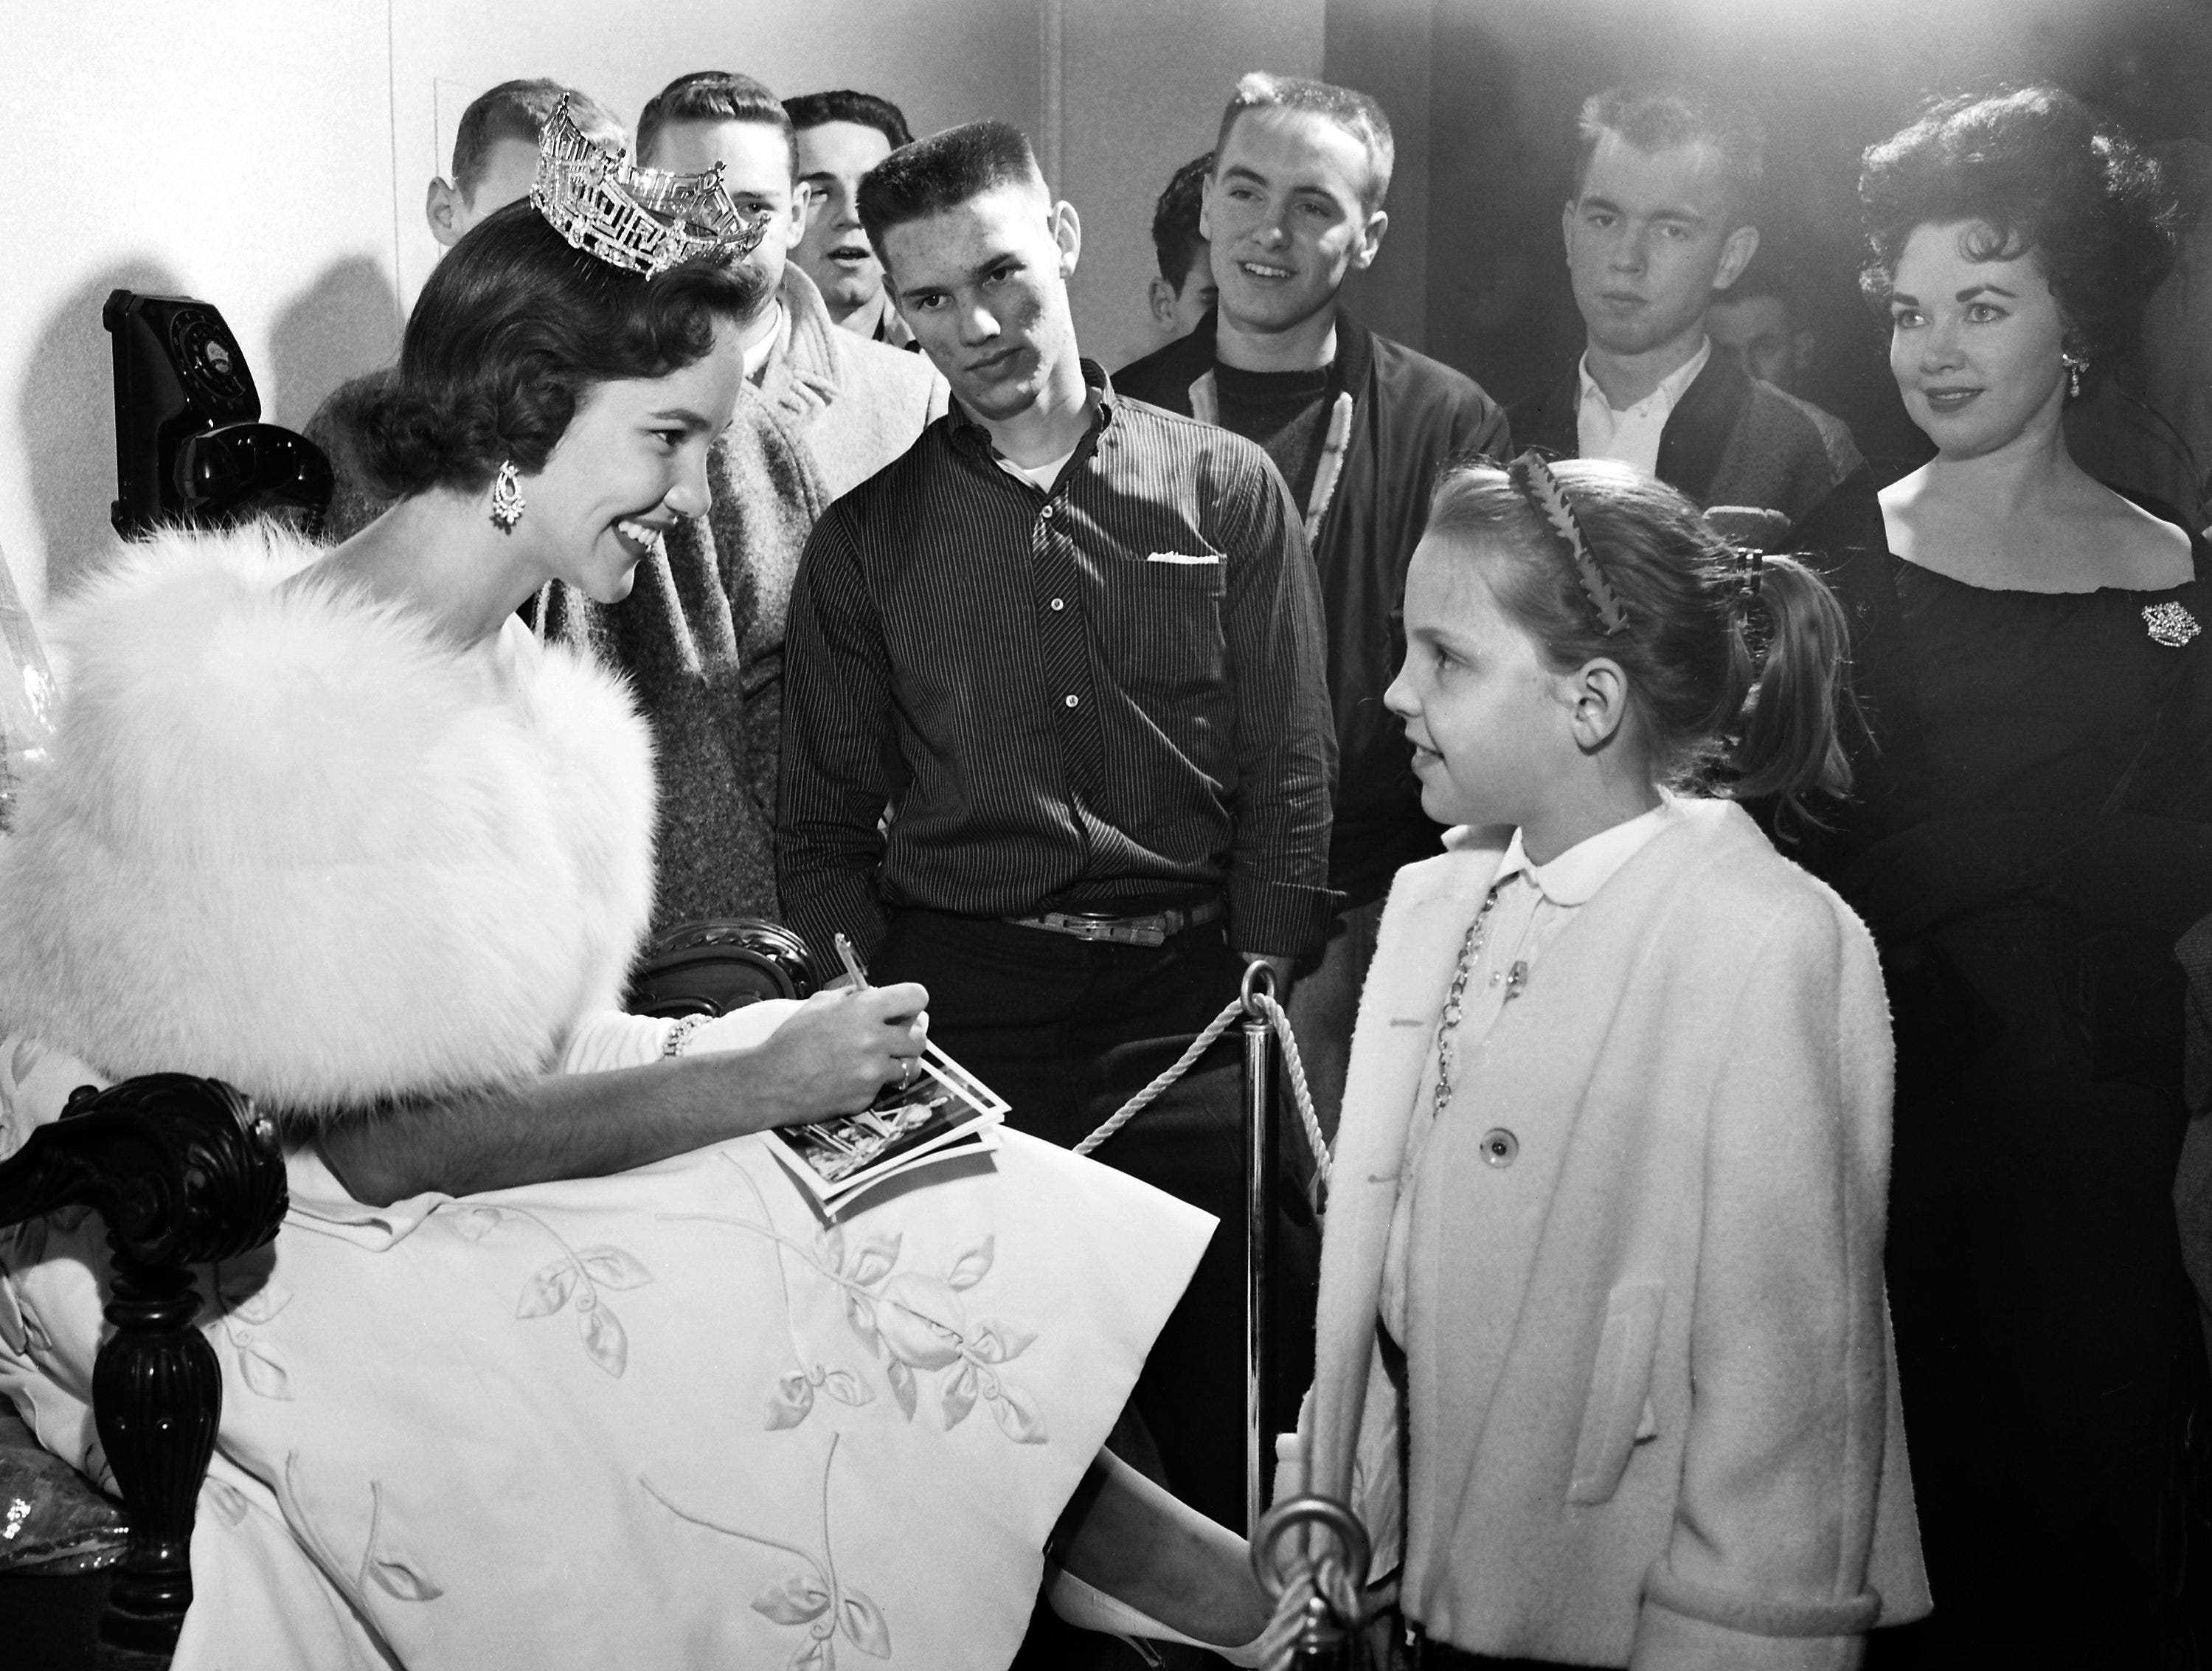 Autographing pictures of herself was nearly a full-time job for Miss America on 11 Jan 1959 at the Memphis Auto Show in Ellis Auditorium.  Drue Bauer, 10, daughter of Mr. and Mrs. Fred Bauer of 2929 Iroquois, was one of the lucky autograph seekers who took home the signature of Mary Ann Mobley, the 1959 national beauty queen from Brandon, Ms.